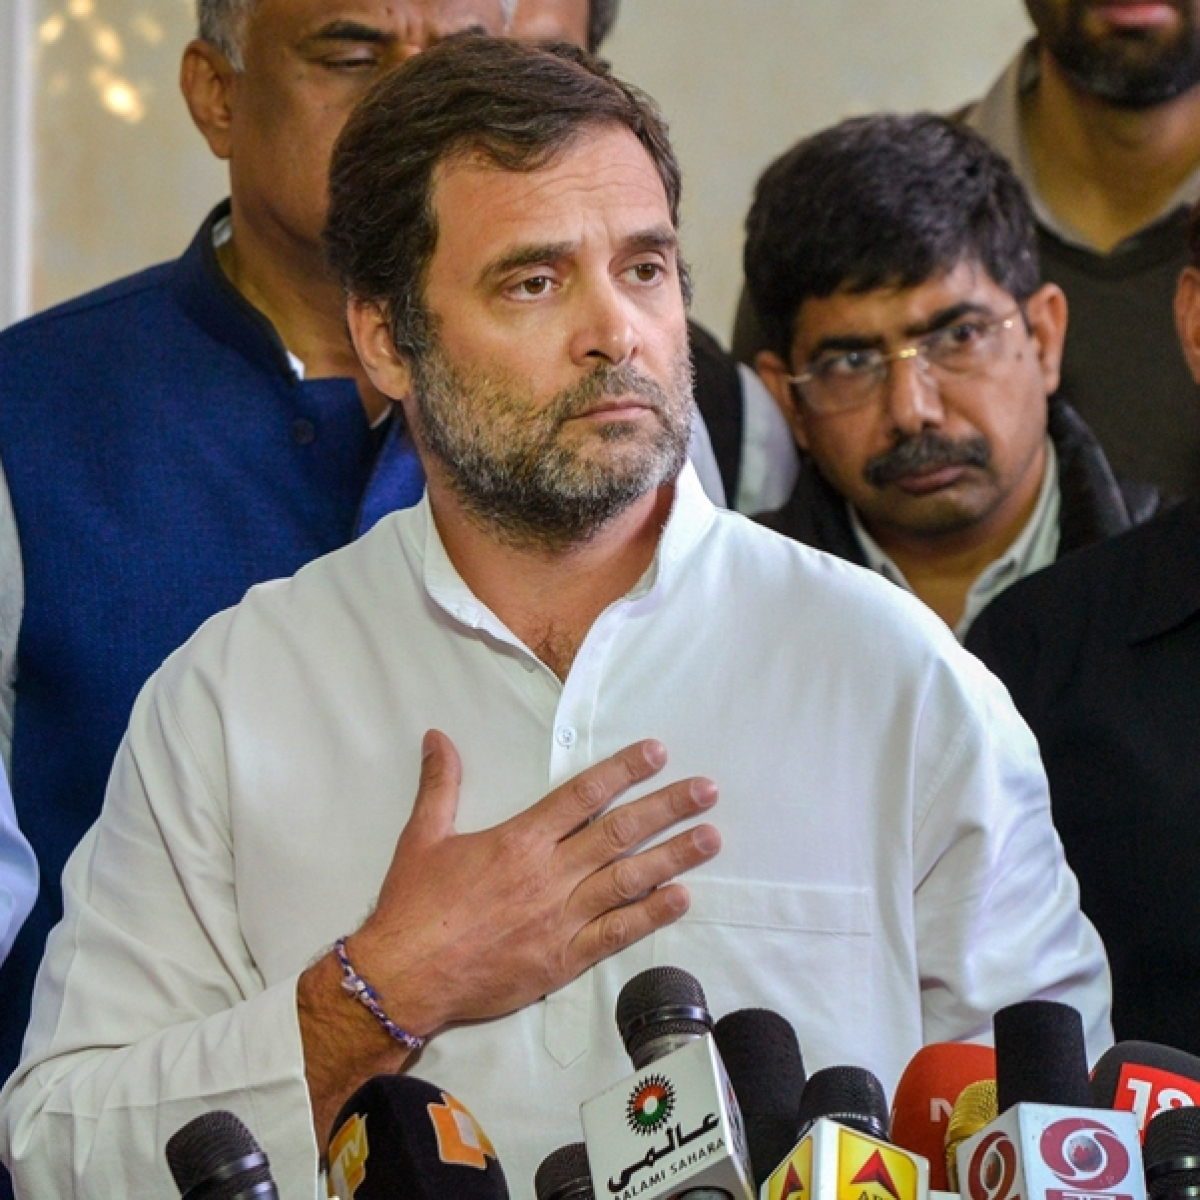 Lifesaving medicines should be made available to Indians first: Rahul Gandhi